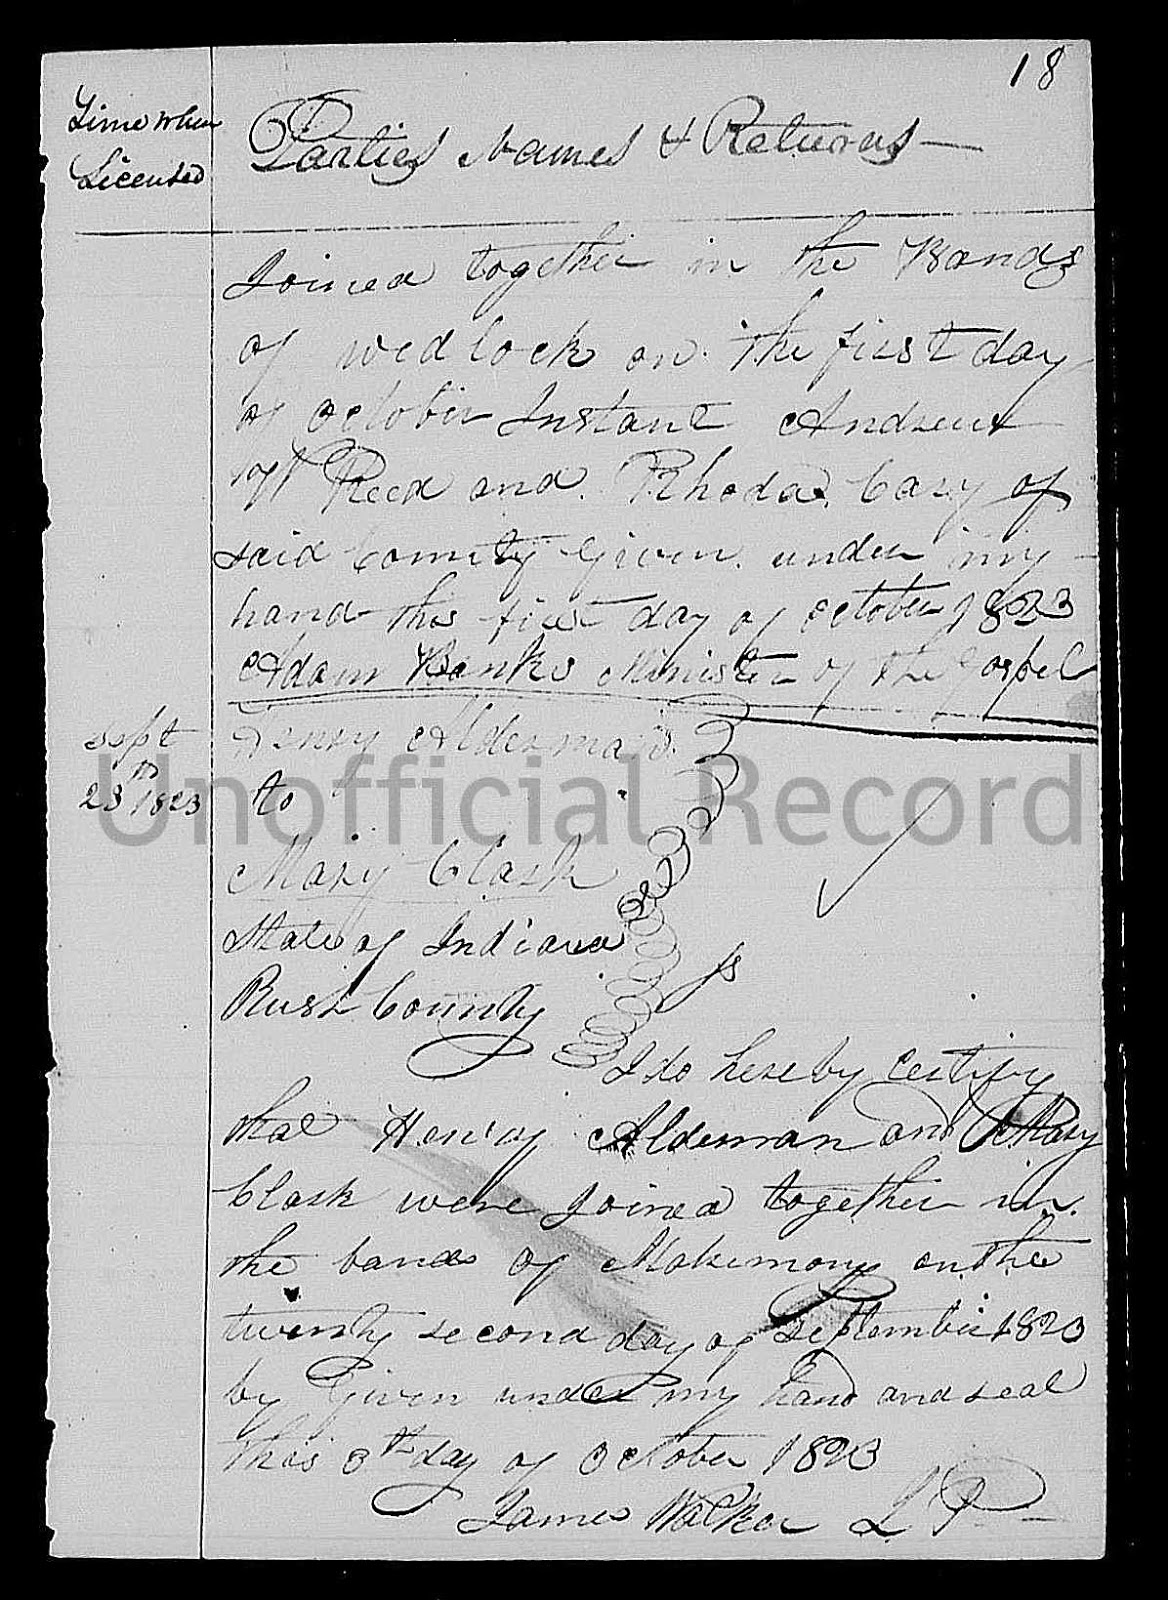 Indiana rush county -  Indiana Marriages 1811 1959 Index And Images Familysearch Https Familysearch Org Pal Mm9 1 1 Xxfc Jhw Accessed 13 Jul 2013 Henry Alderman And